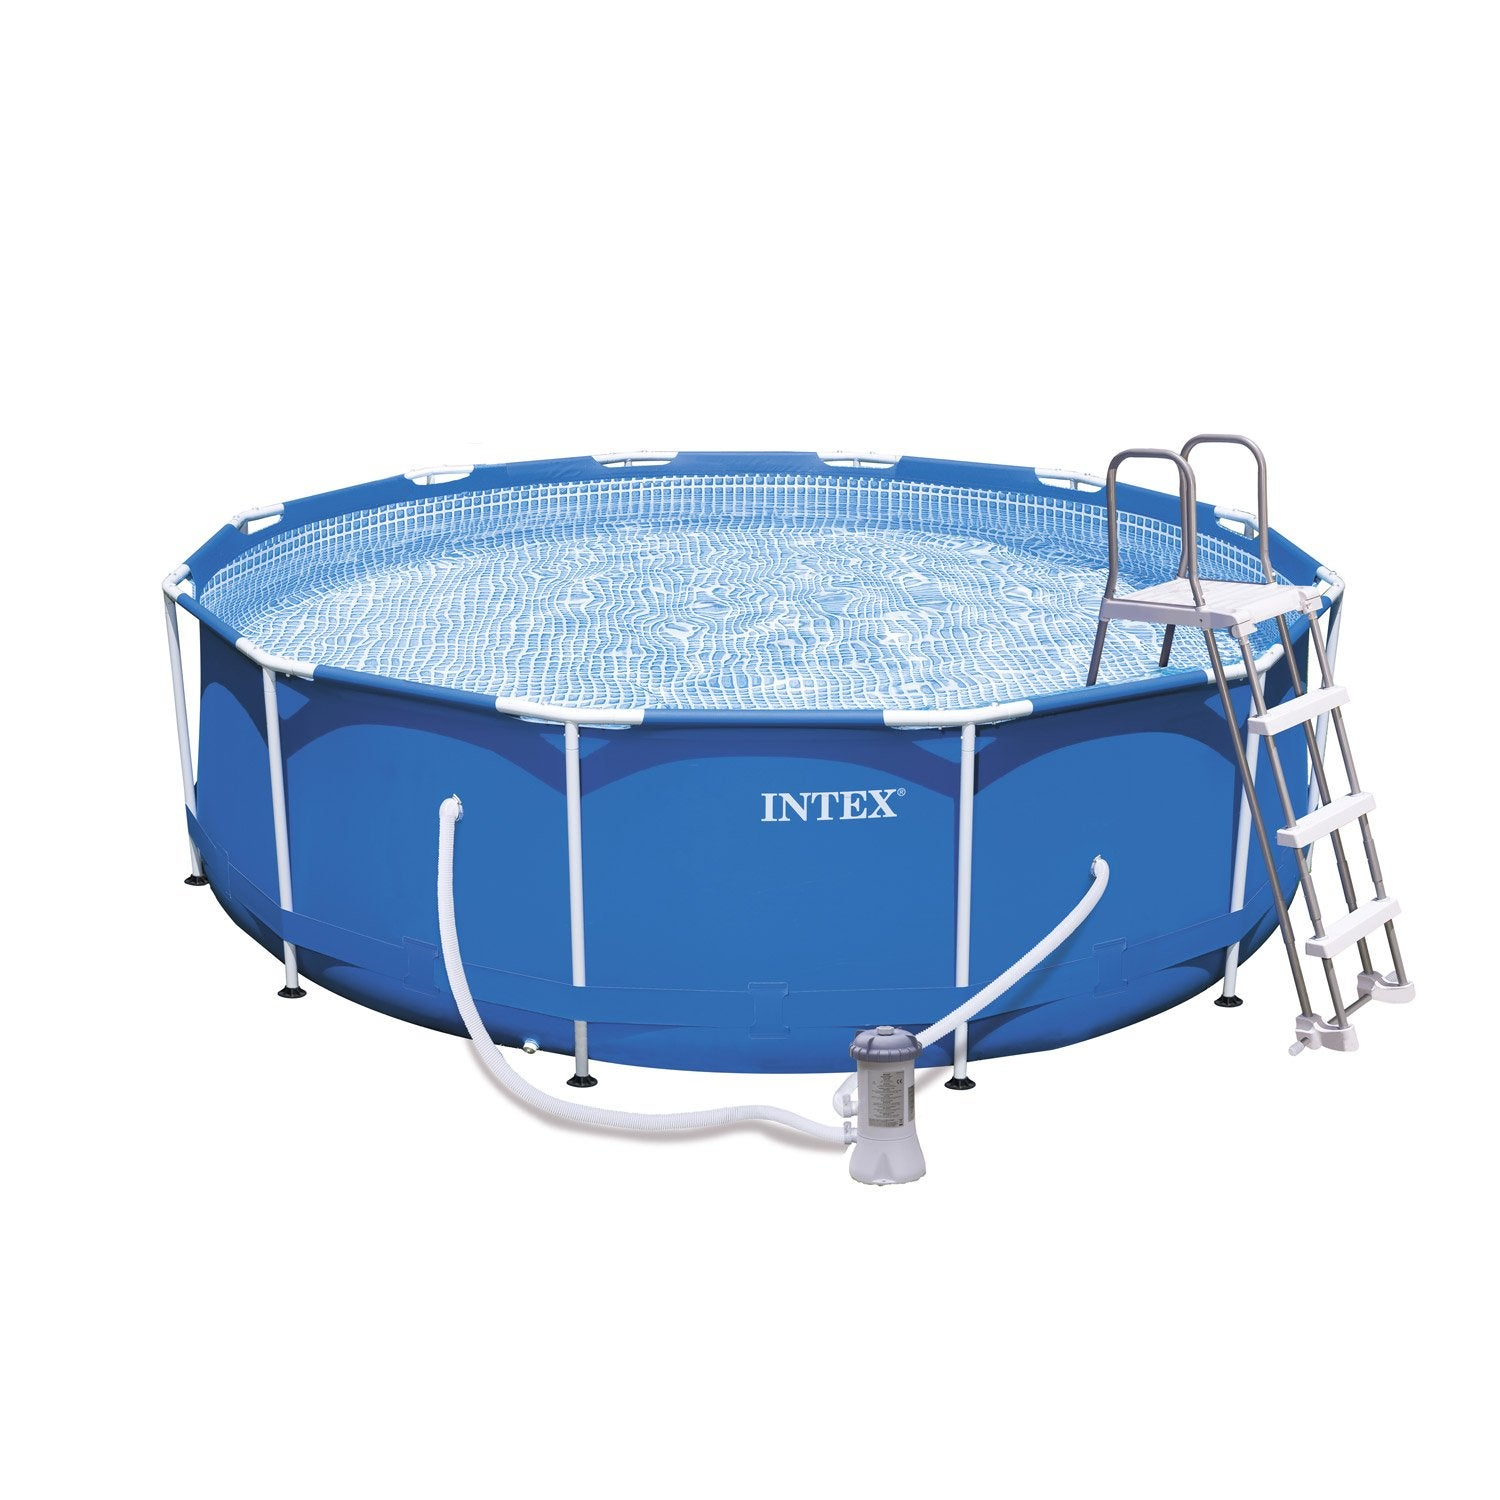 Piscine hors sol autoportante tubulaire m tal frame intex for Piscine gonflable intex ronde